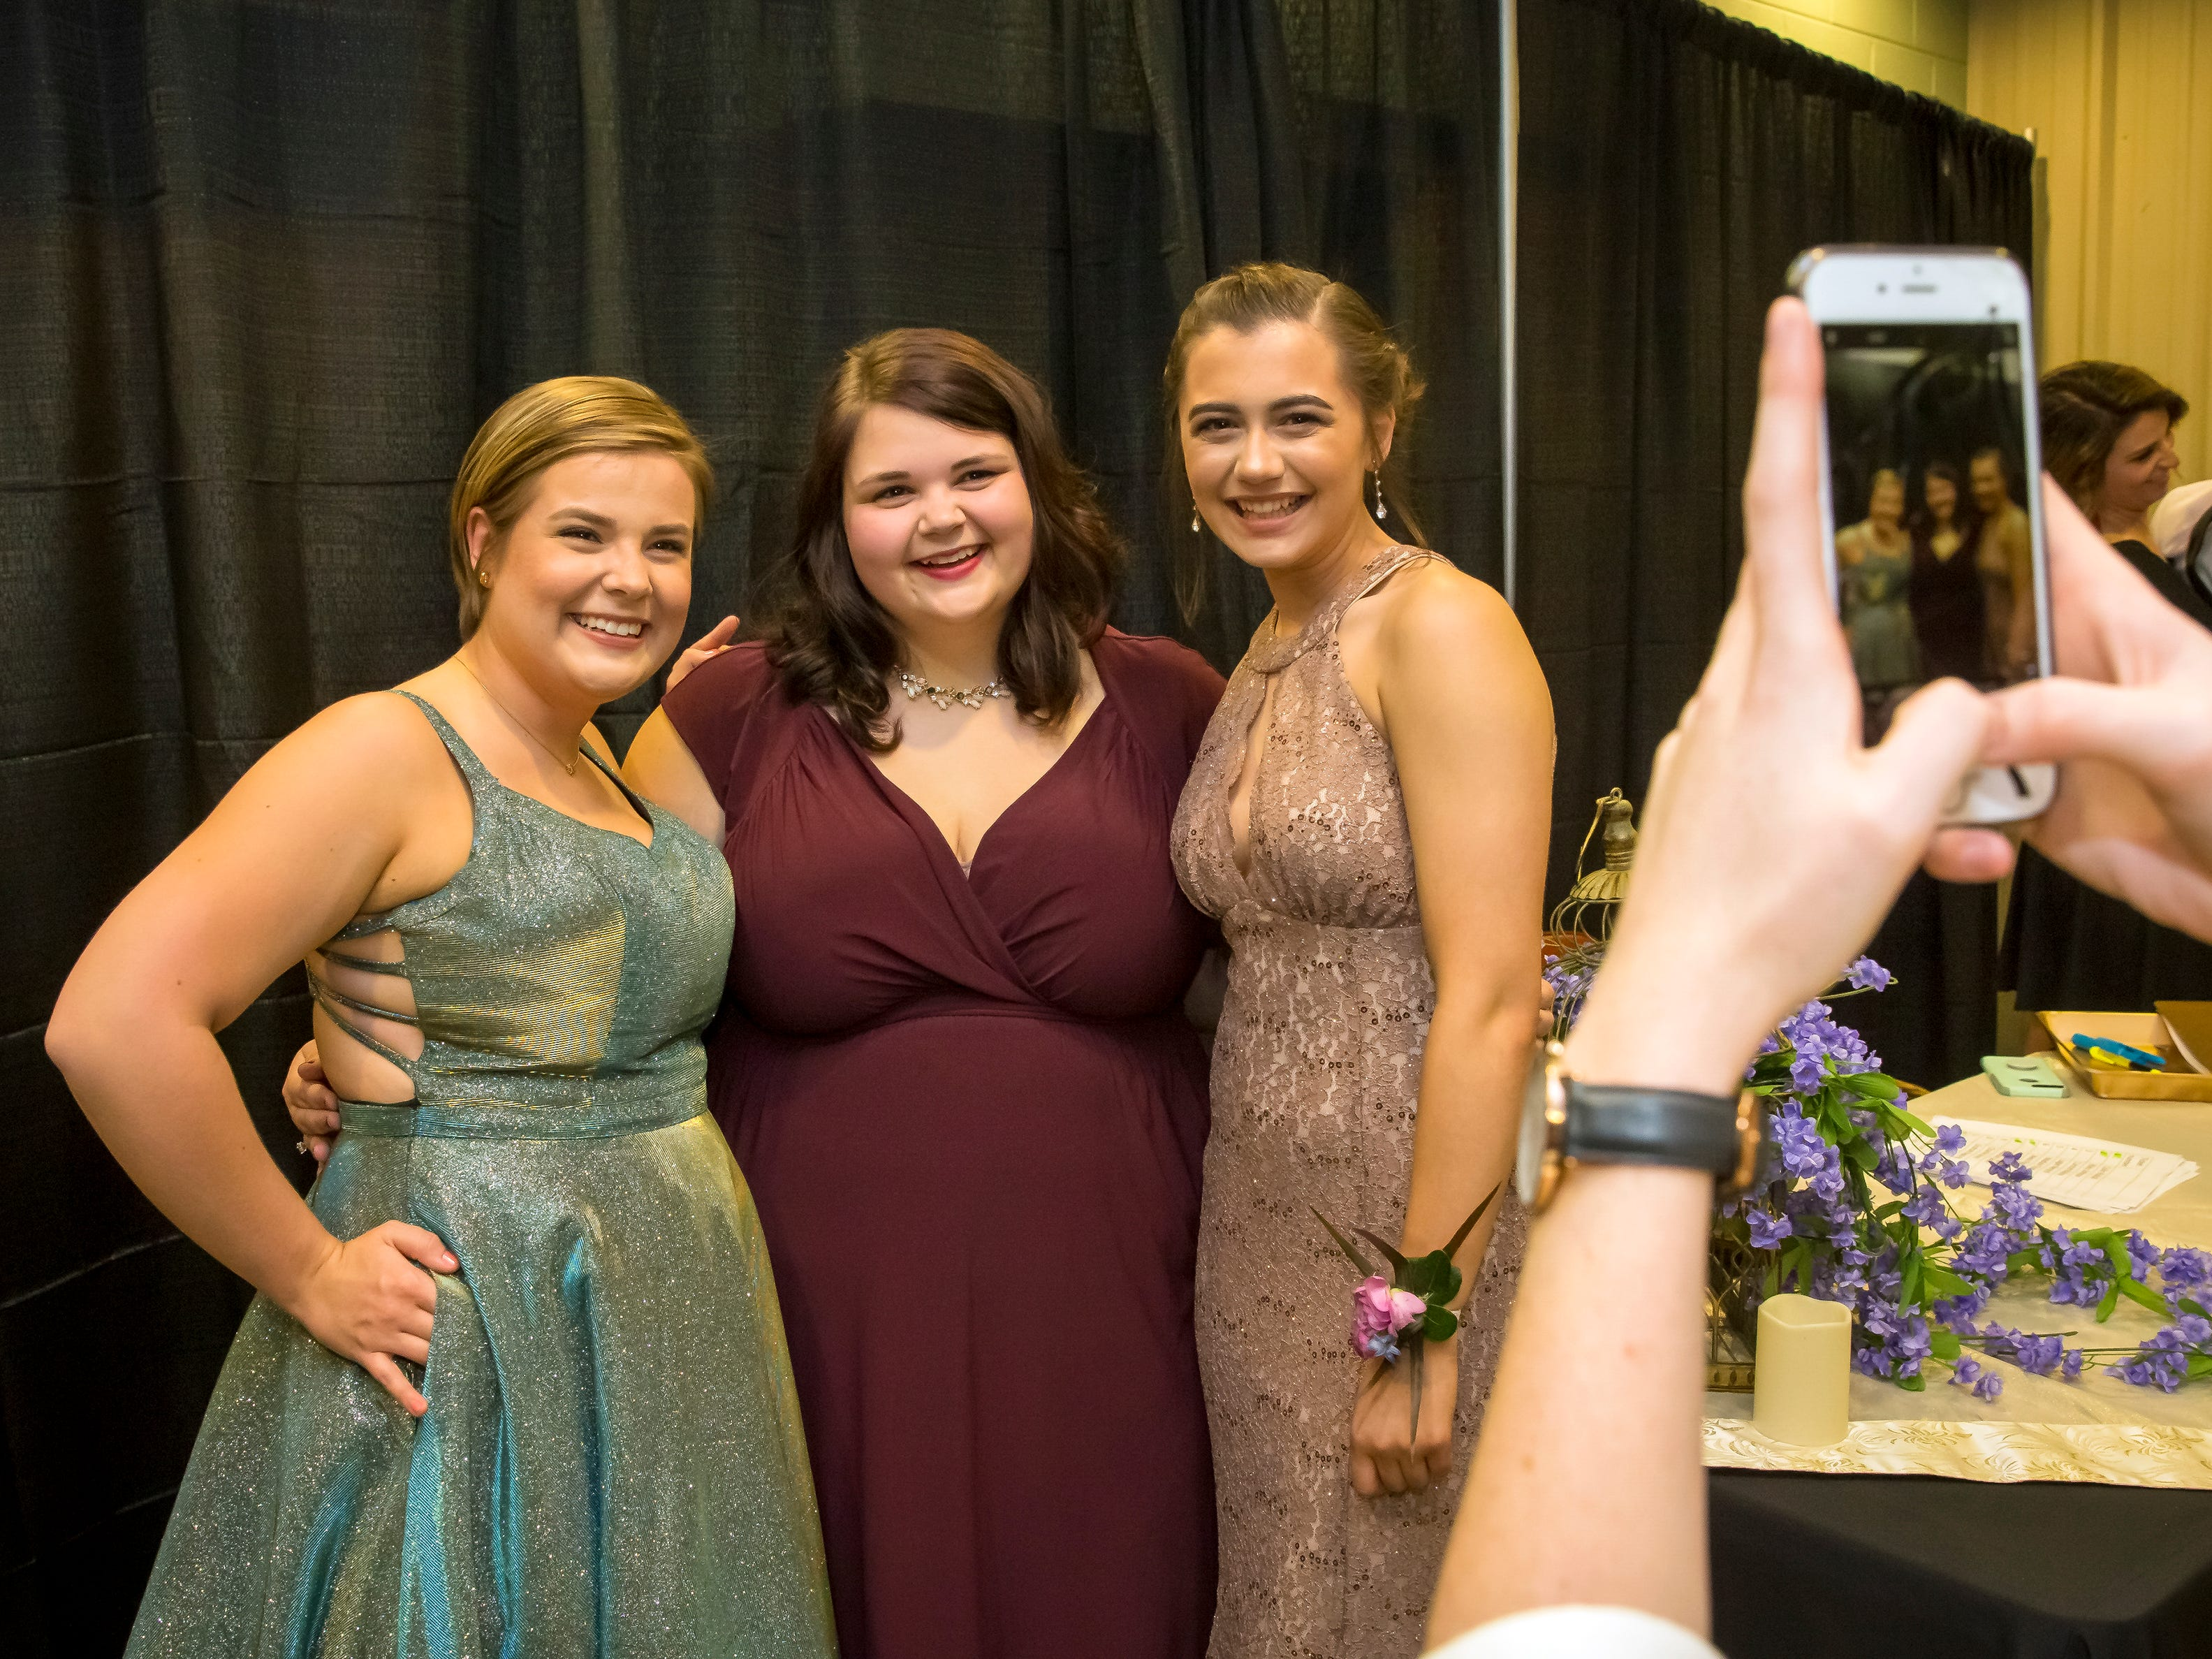 McKinley Green, Mahala Greb-Mills and Bridget Carlson arrive at the Oakland High School prom held at Lane Agri-Park Saturday, April, 27, 2019 in Murfreesboro .